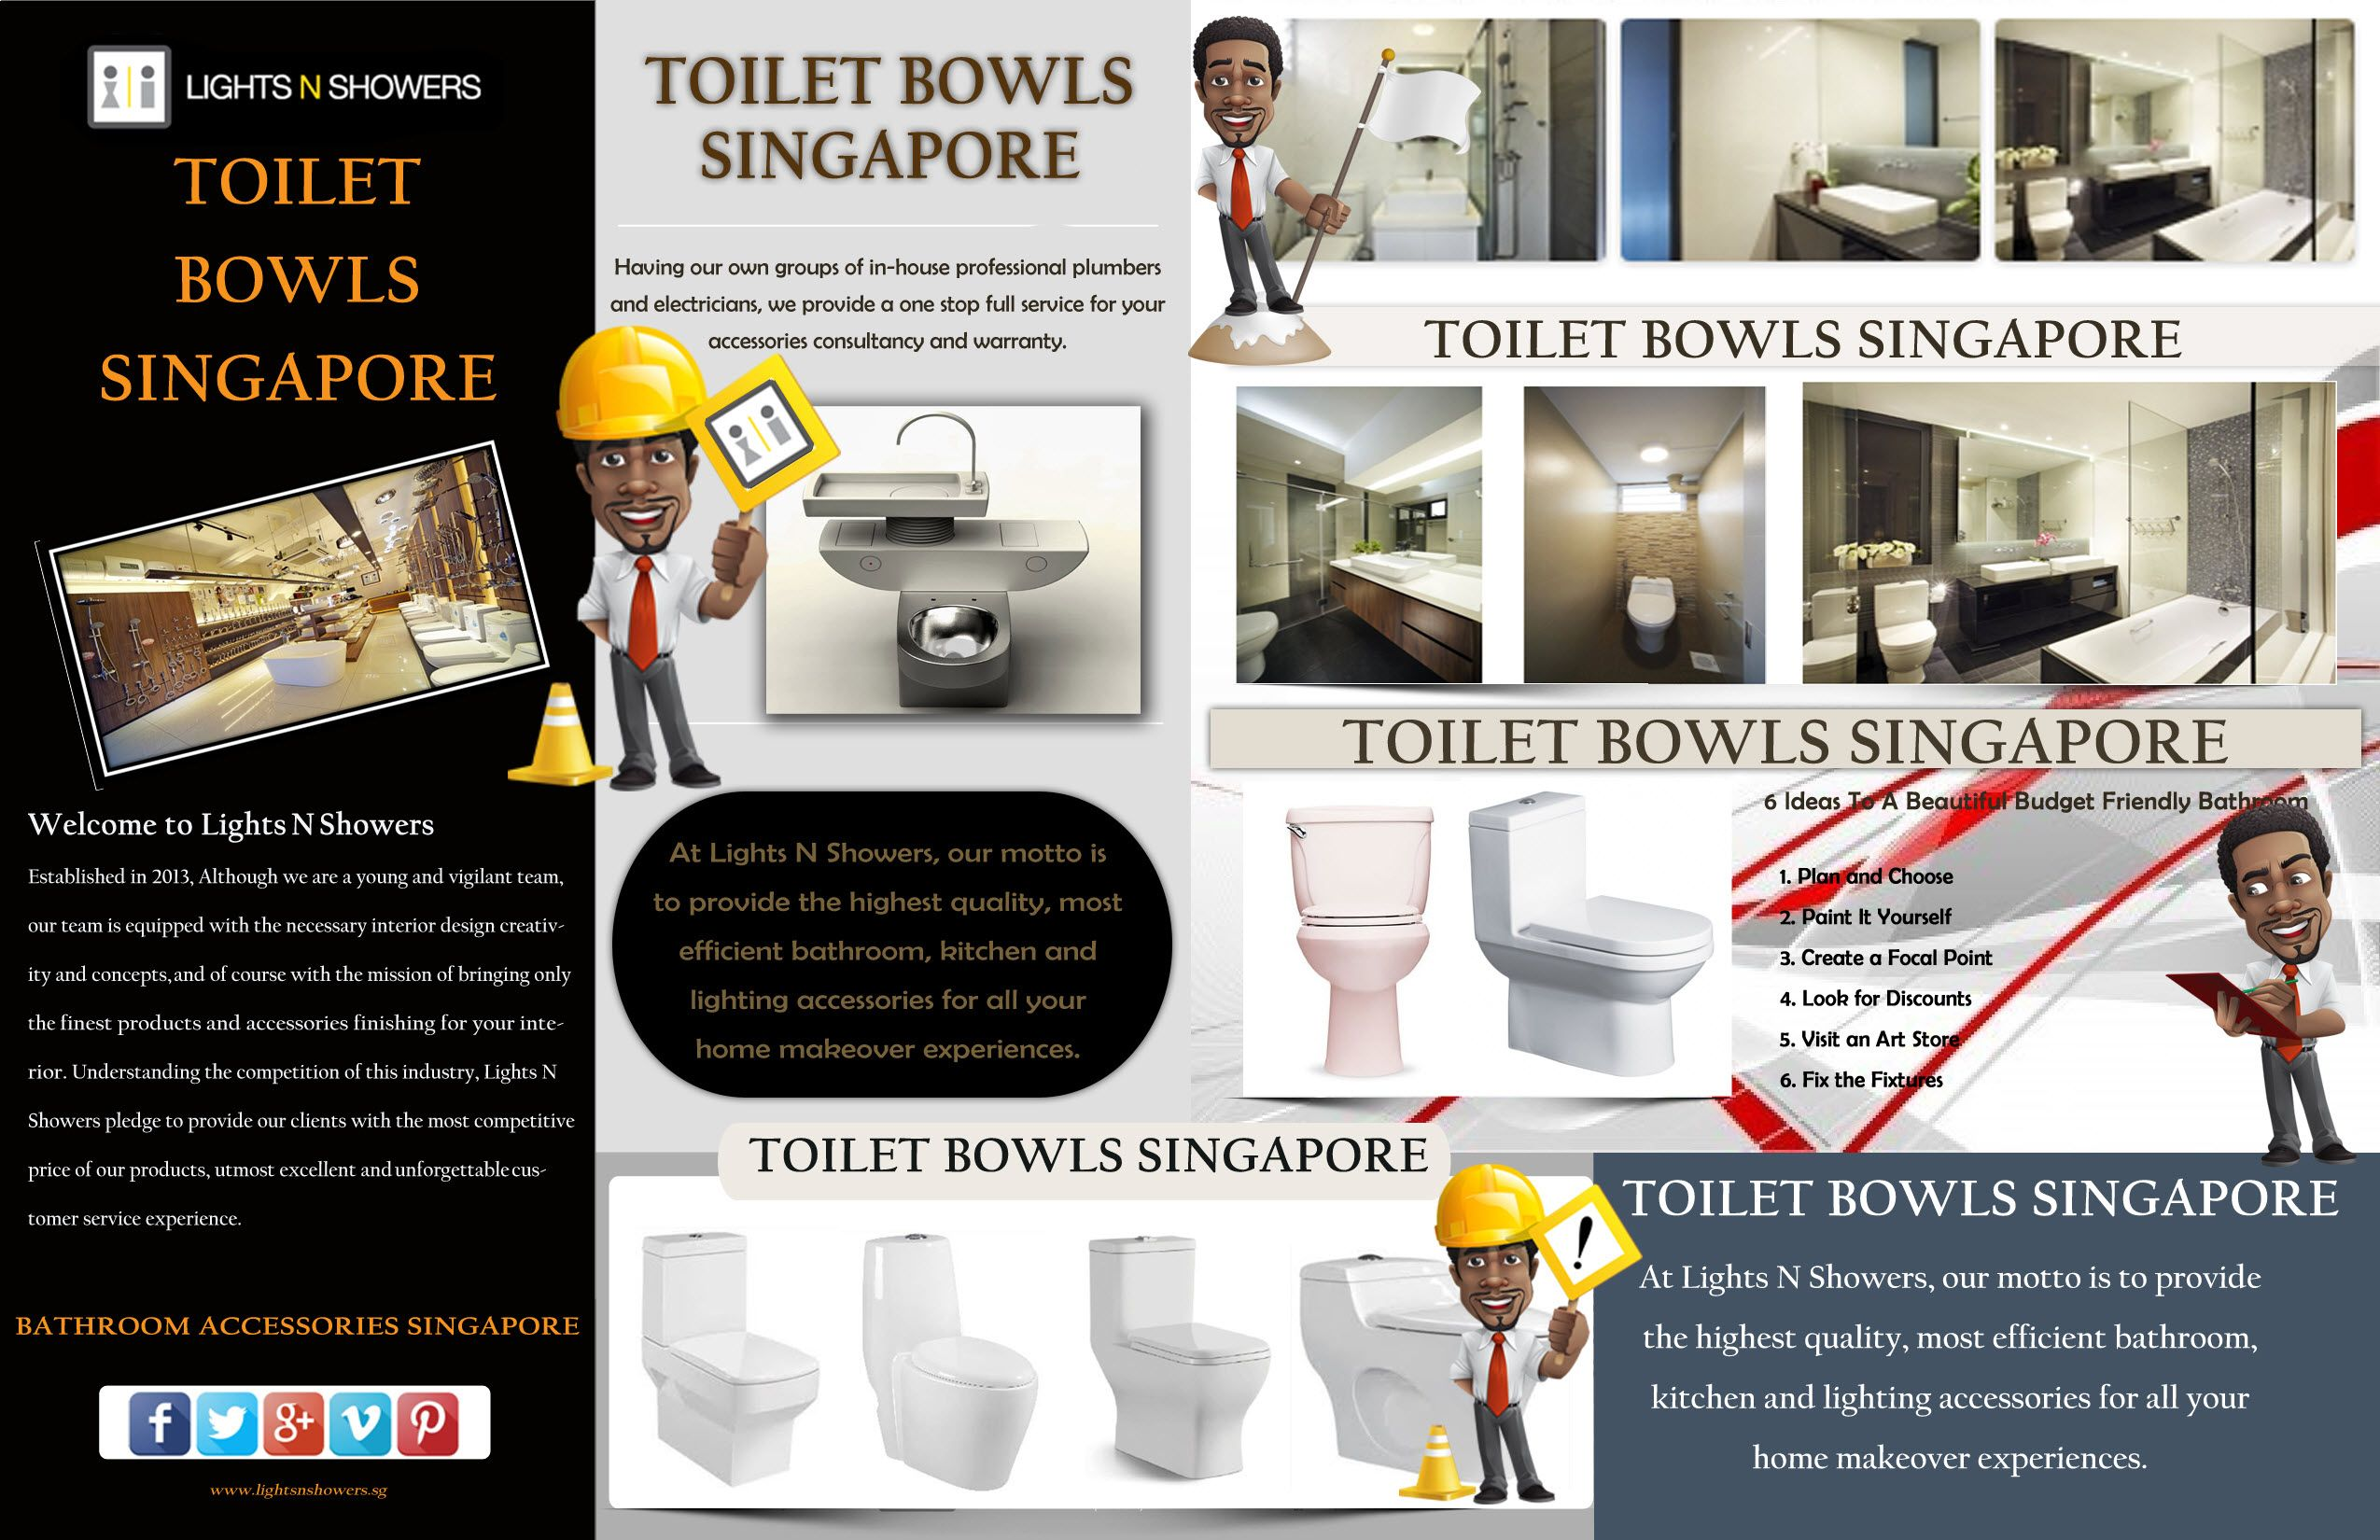 Visit this site http://www.lightsnshowers.sg/toilet-bowls-singapore ...